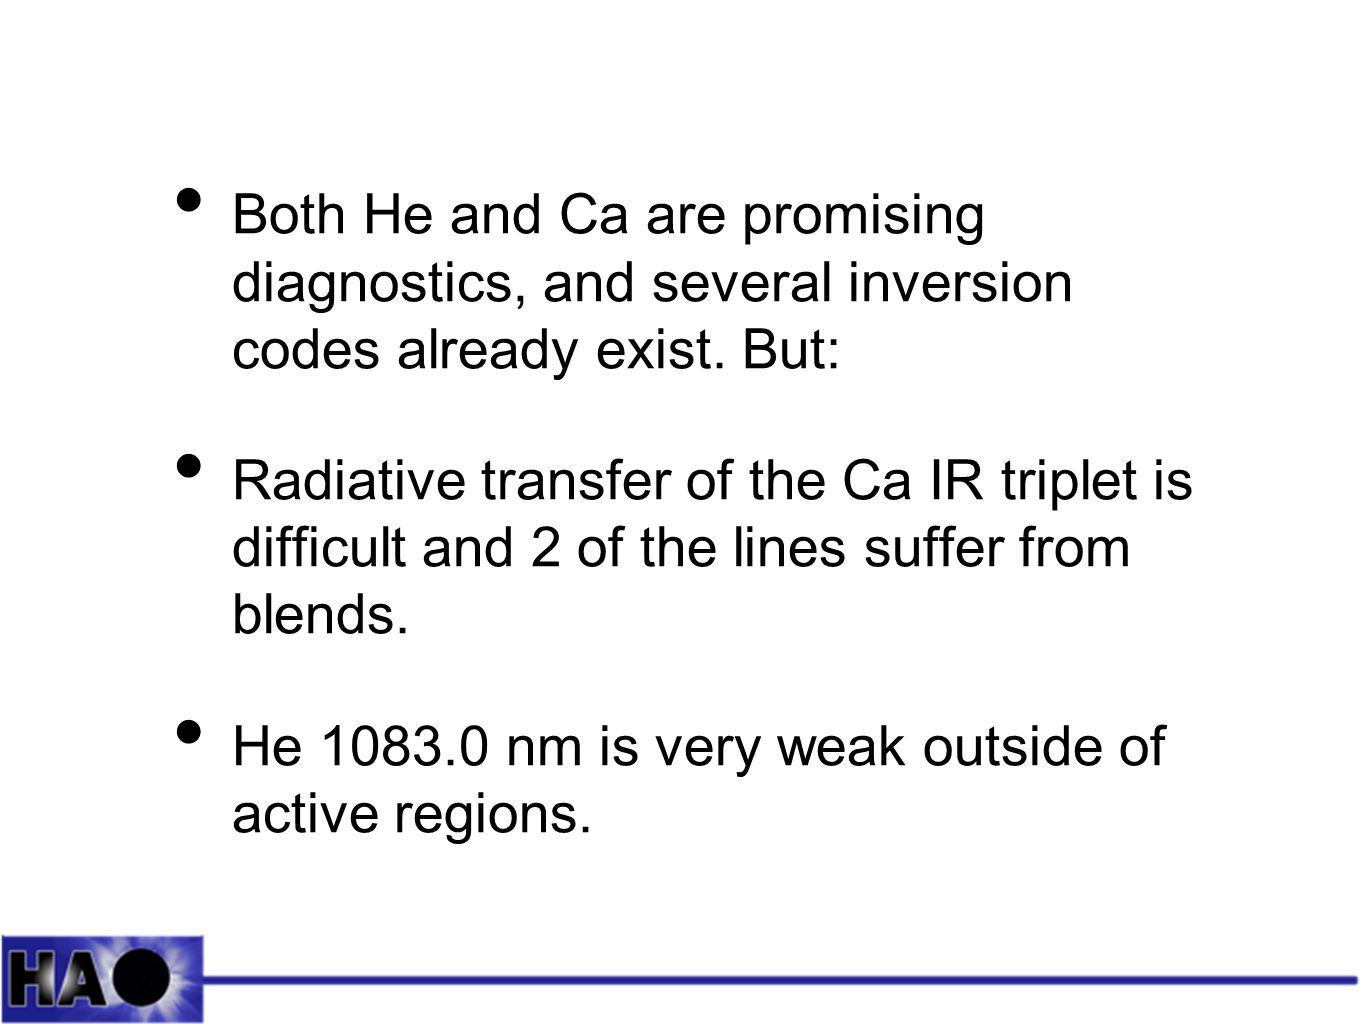 Both He and Ca are promising diagnostics, and several inversion codes already exist.